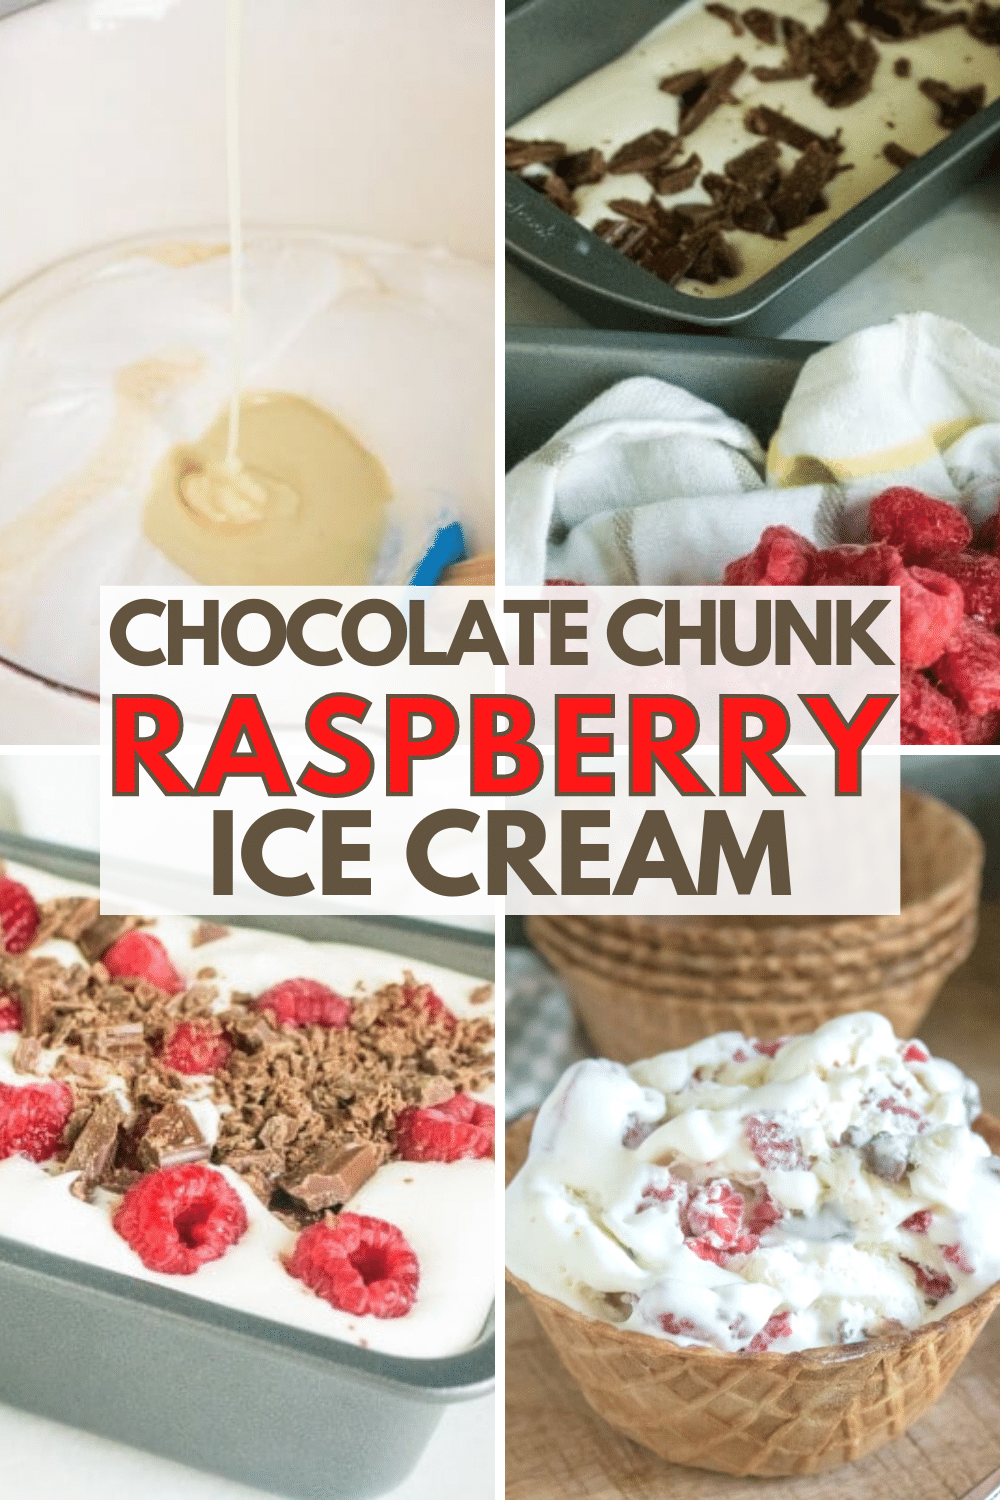 This easy homemade chocolate chunk raspberry ice cream recipe is so delicious. This is a great sweetened condensed ice cream recipe! #icecream #nochurn #chocolate via @wondermomwannab